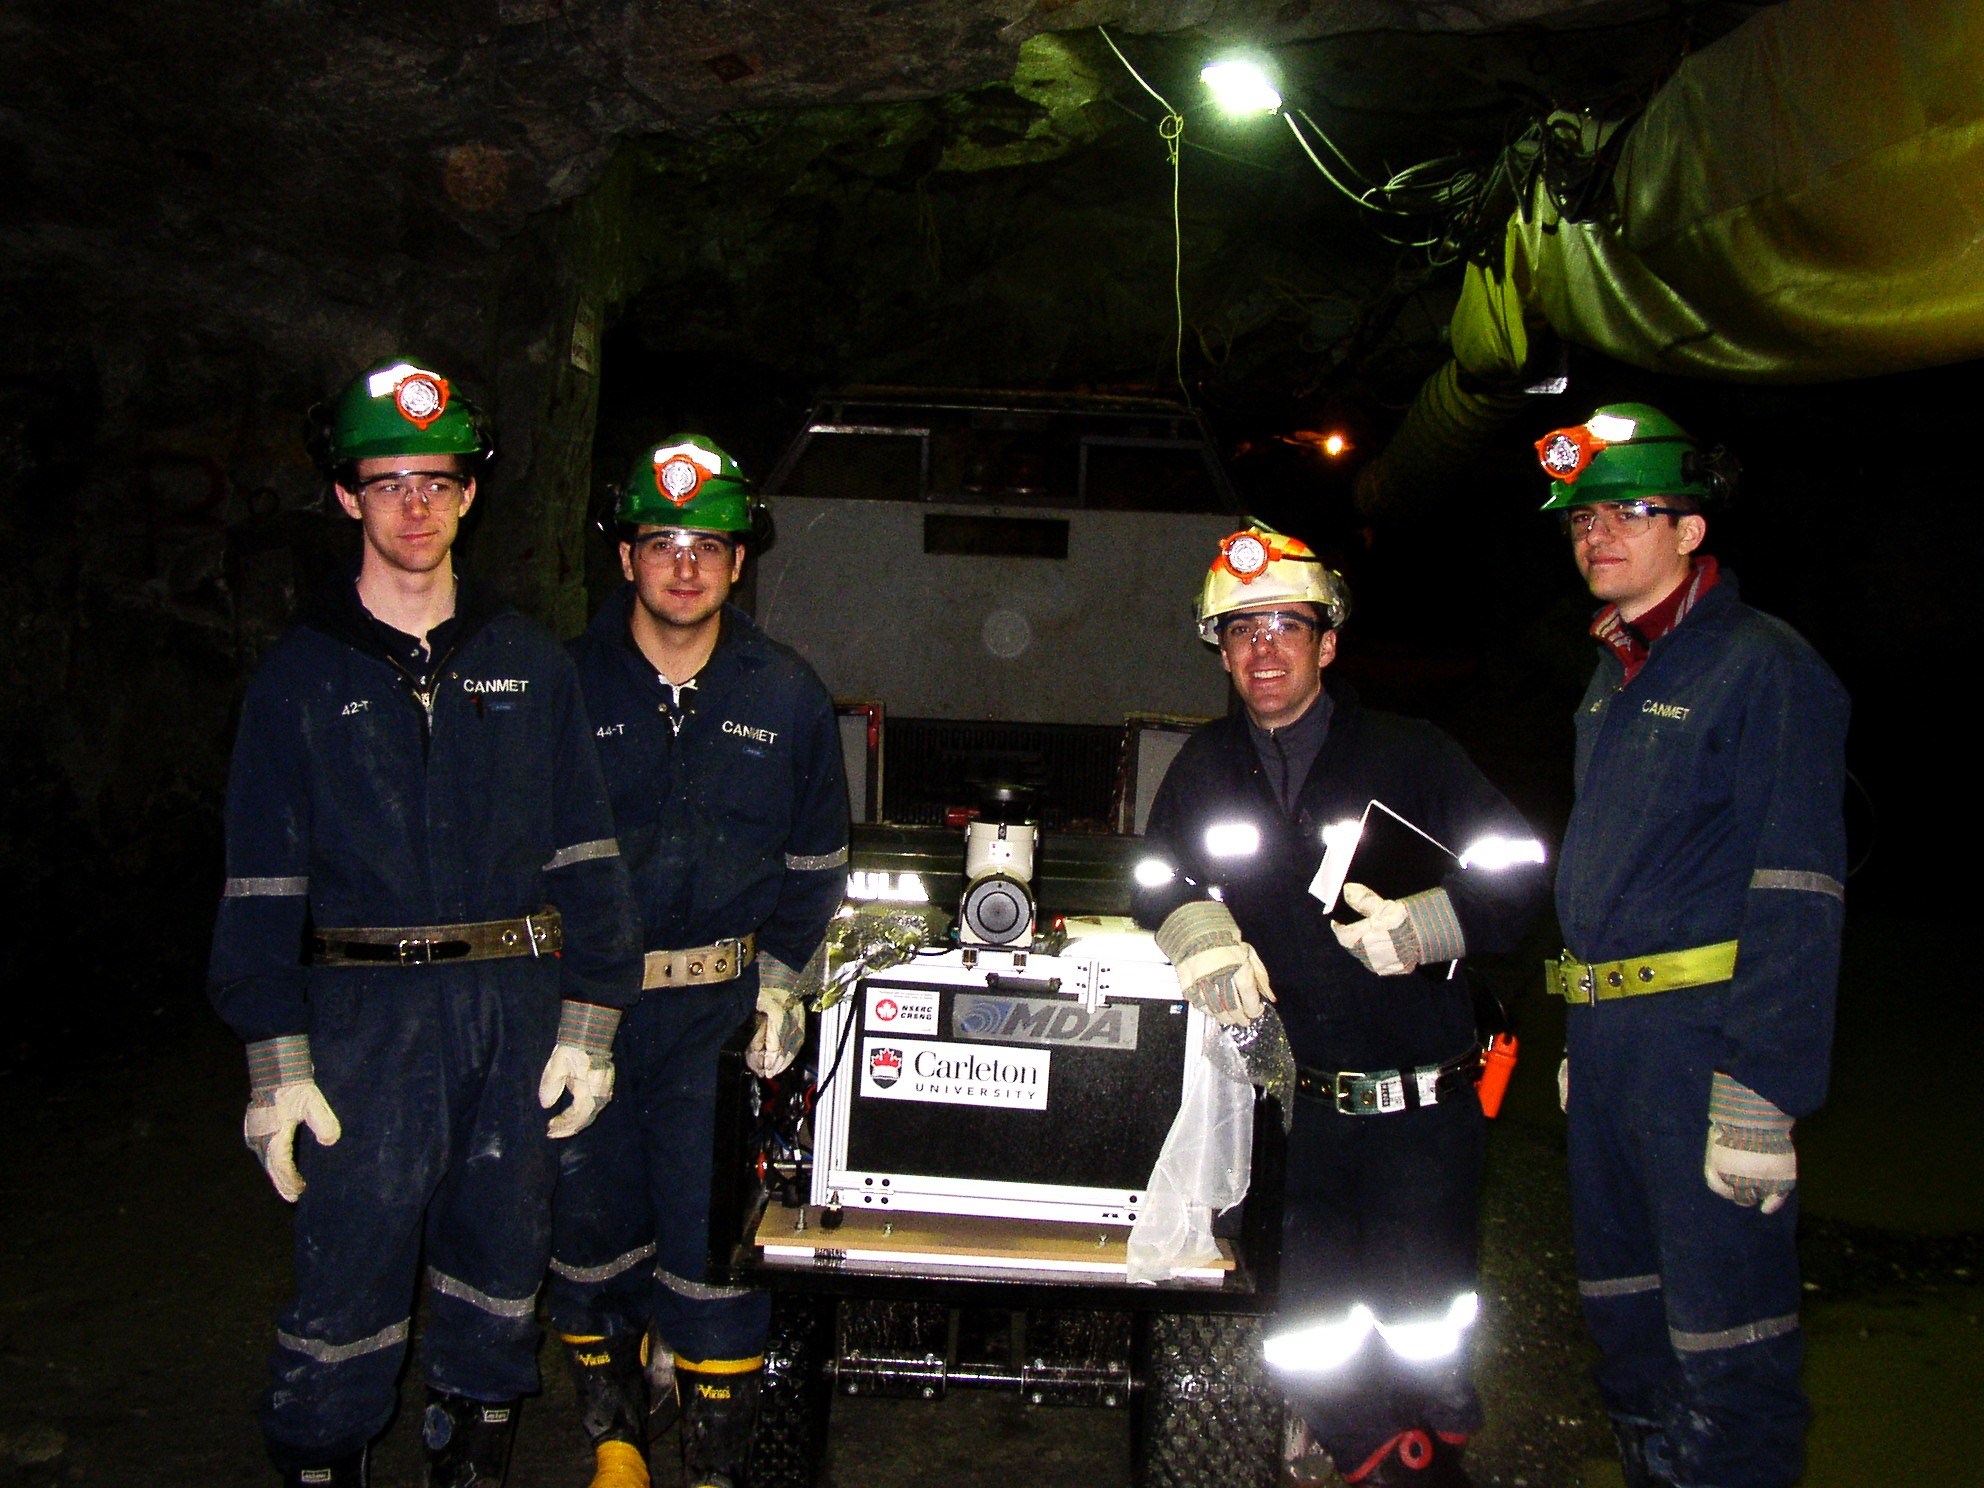 uGPS research team underground with an early uGPS prototype at the CANMET Experimental Mine near Val d'Or, QC